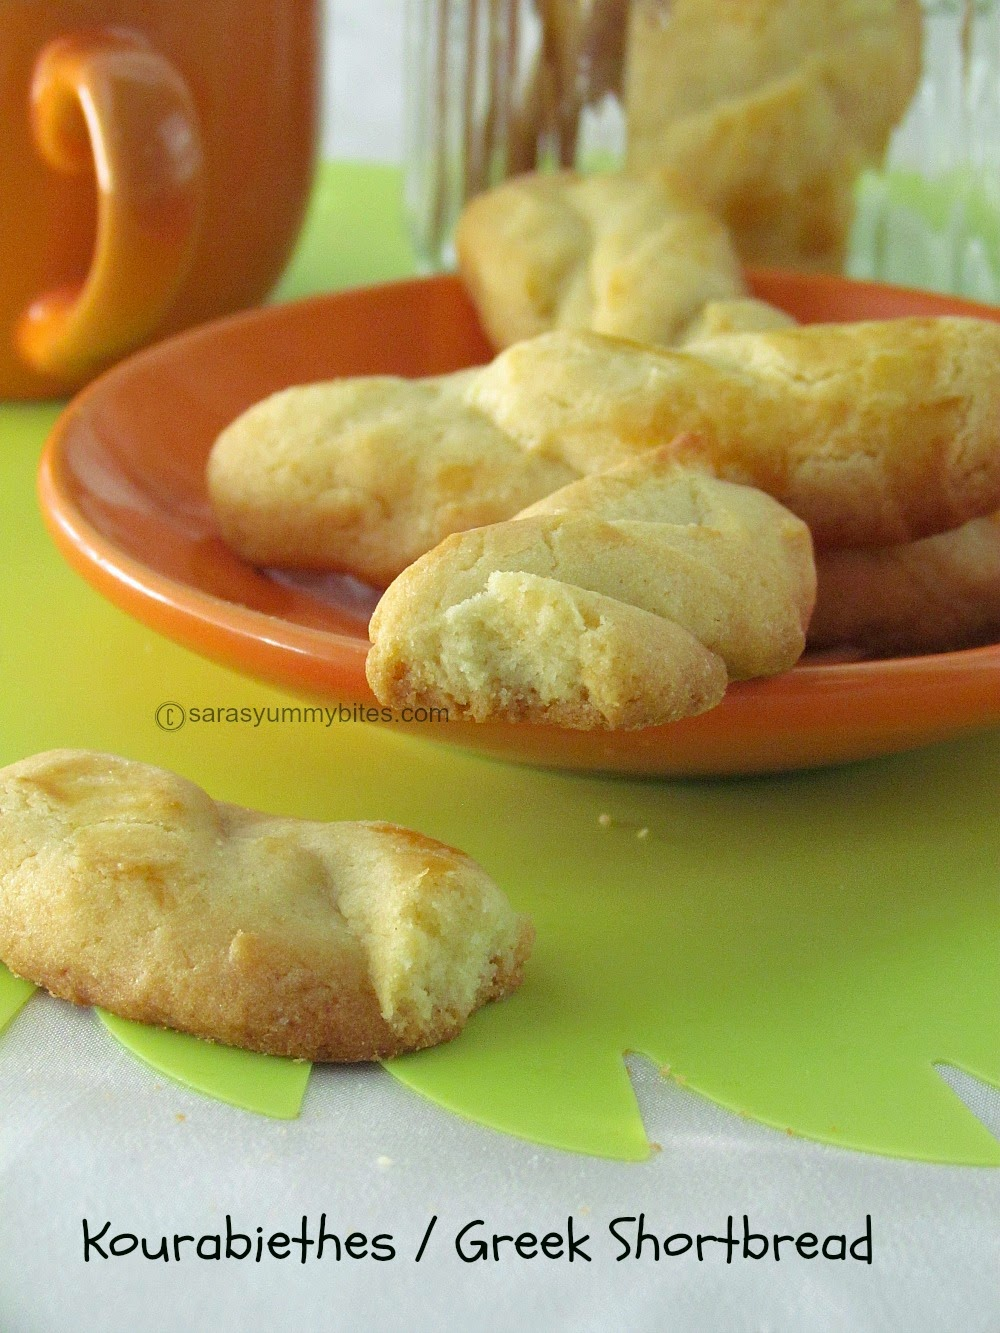 Kourabiethes / Greek Shortbread